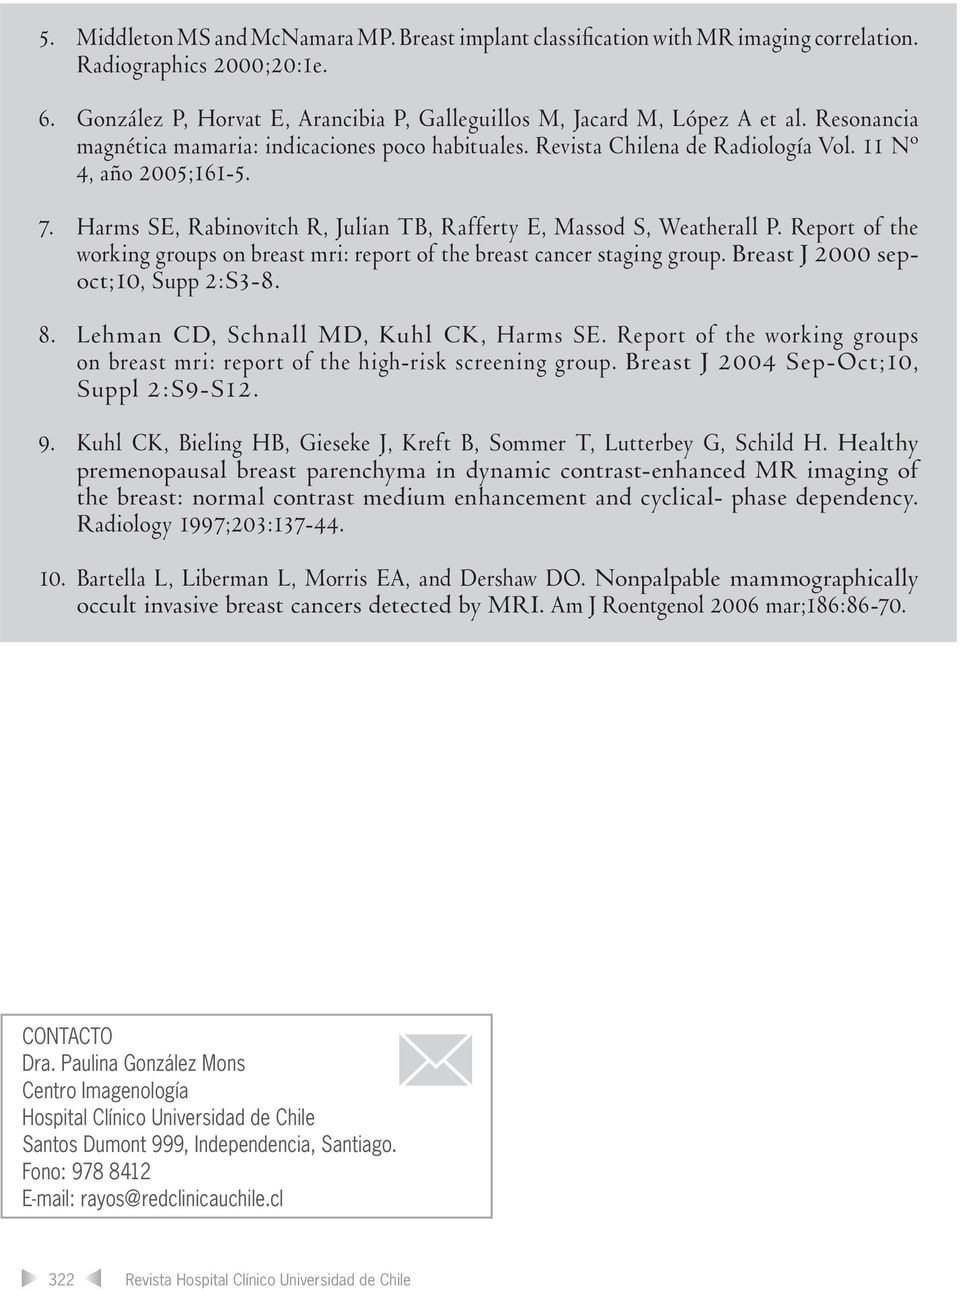 Report of the working groups on breast mri: report of the breast cancer staging group. Breast J 2000 sepoct;10, Supp 2:S3-8. 8. Lehman CD, Schnall MD, Kuhl CK, Harms SE.